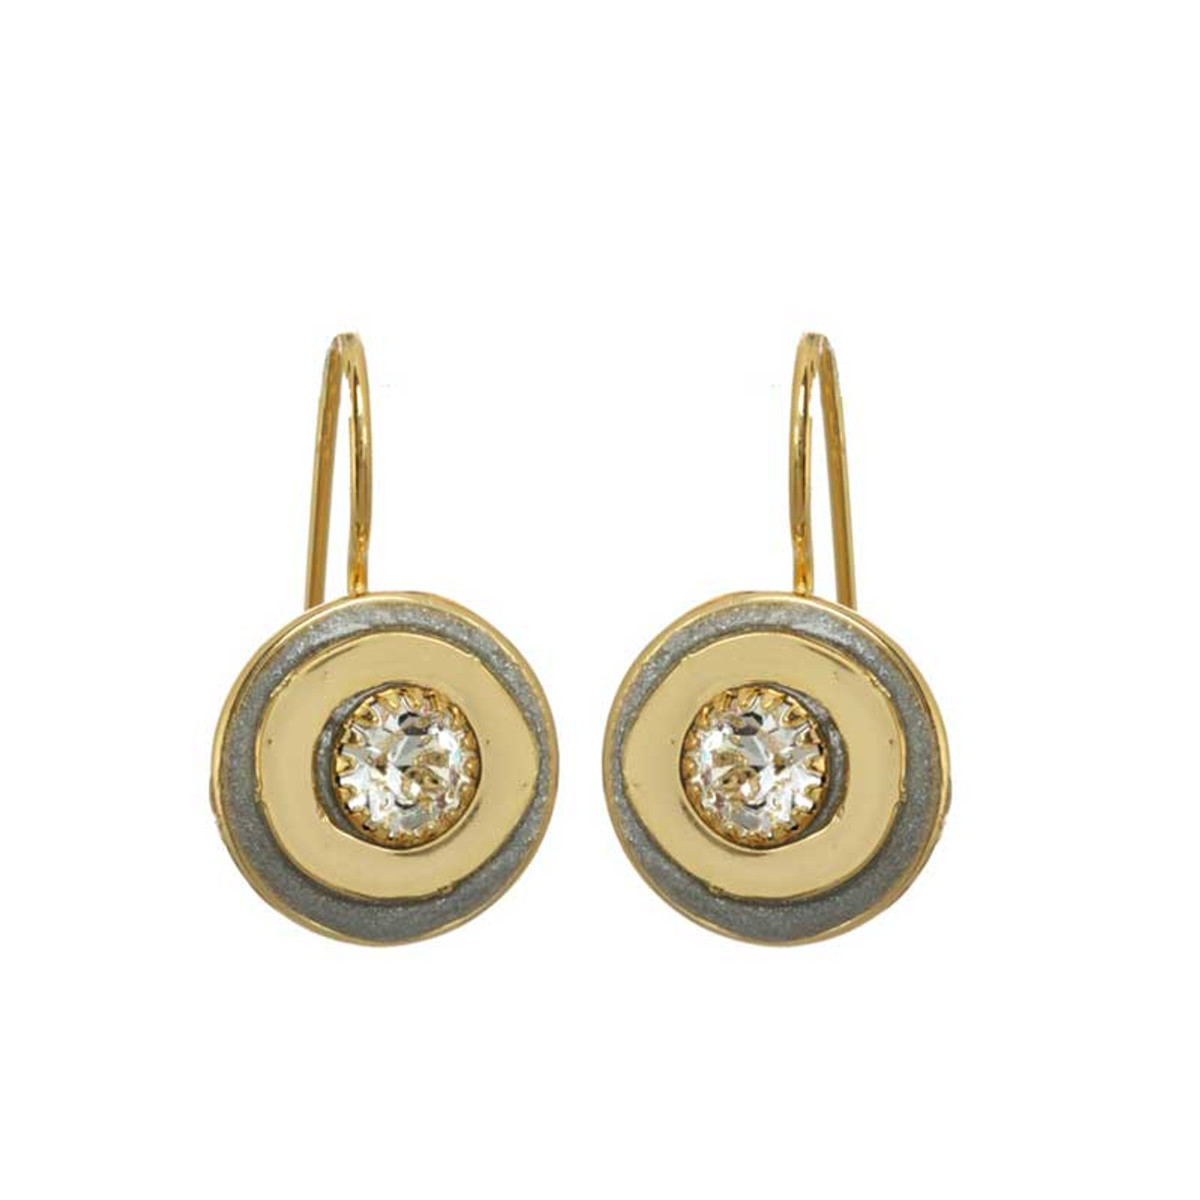 Gold Michal Golan Jewelry Icicle Style Earrings